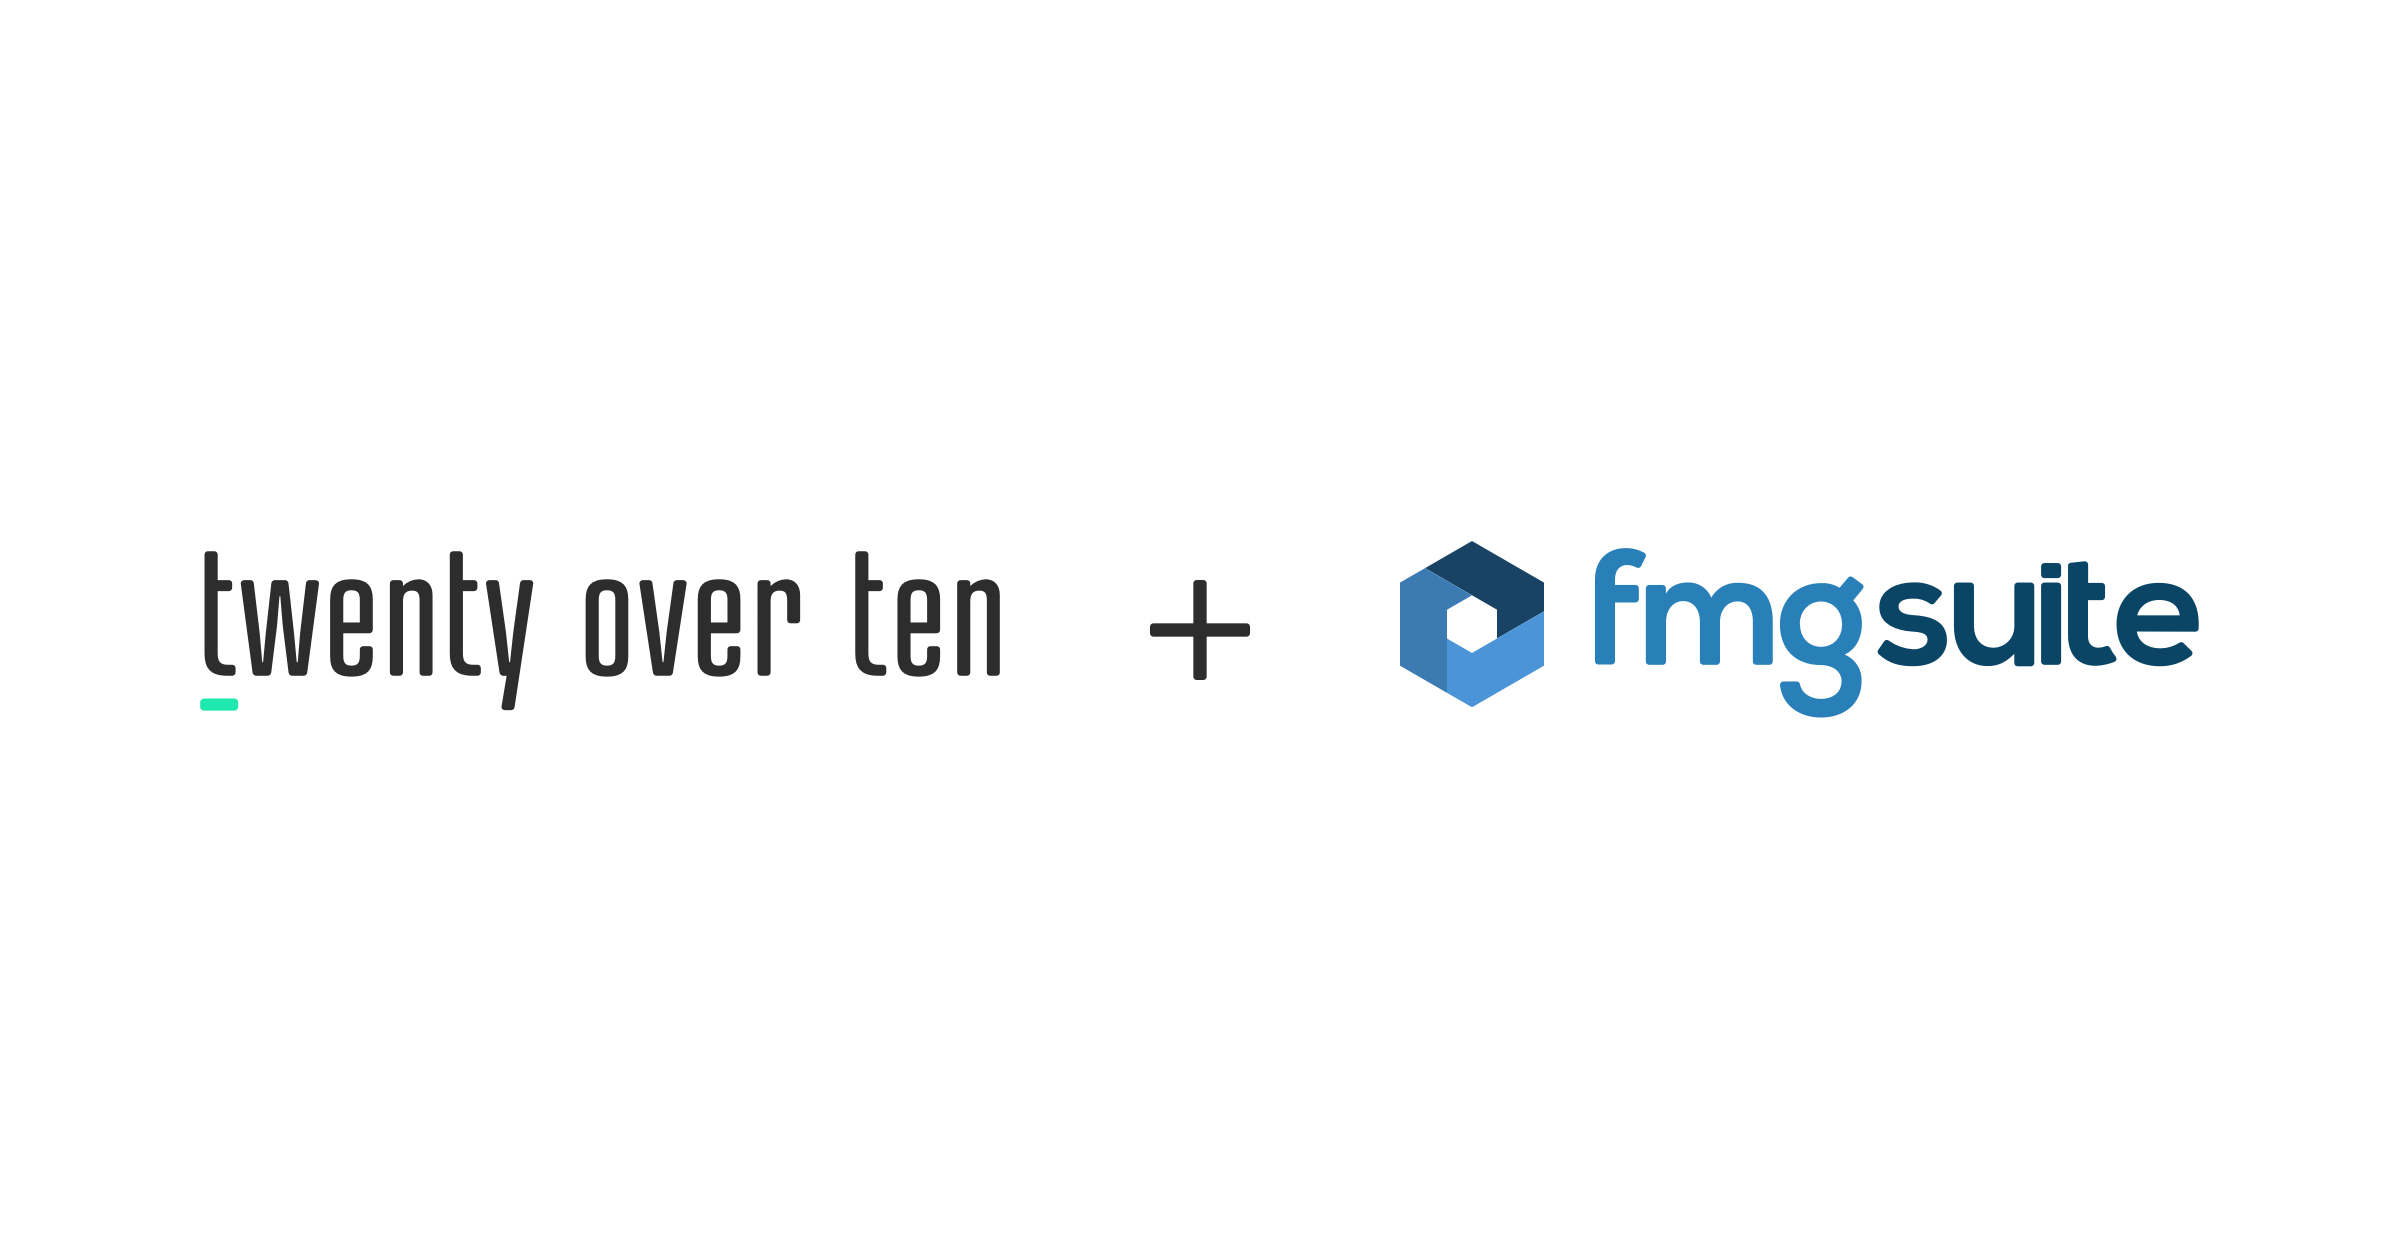 FMG Suite Announces Acquisition of Twenty Over Ten Featured Image